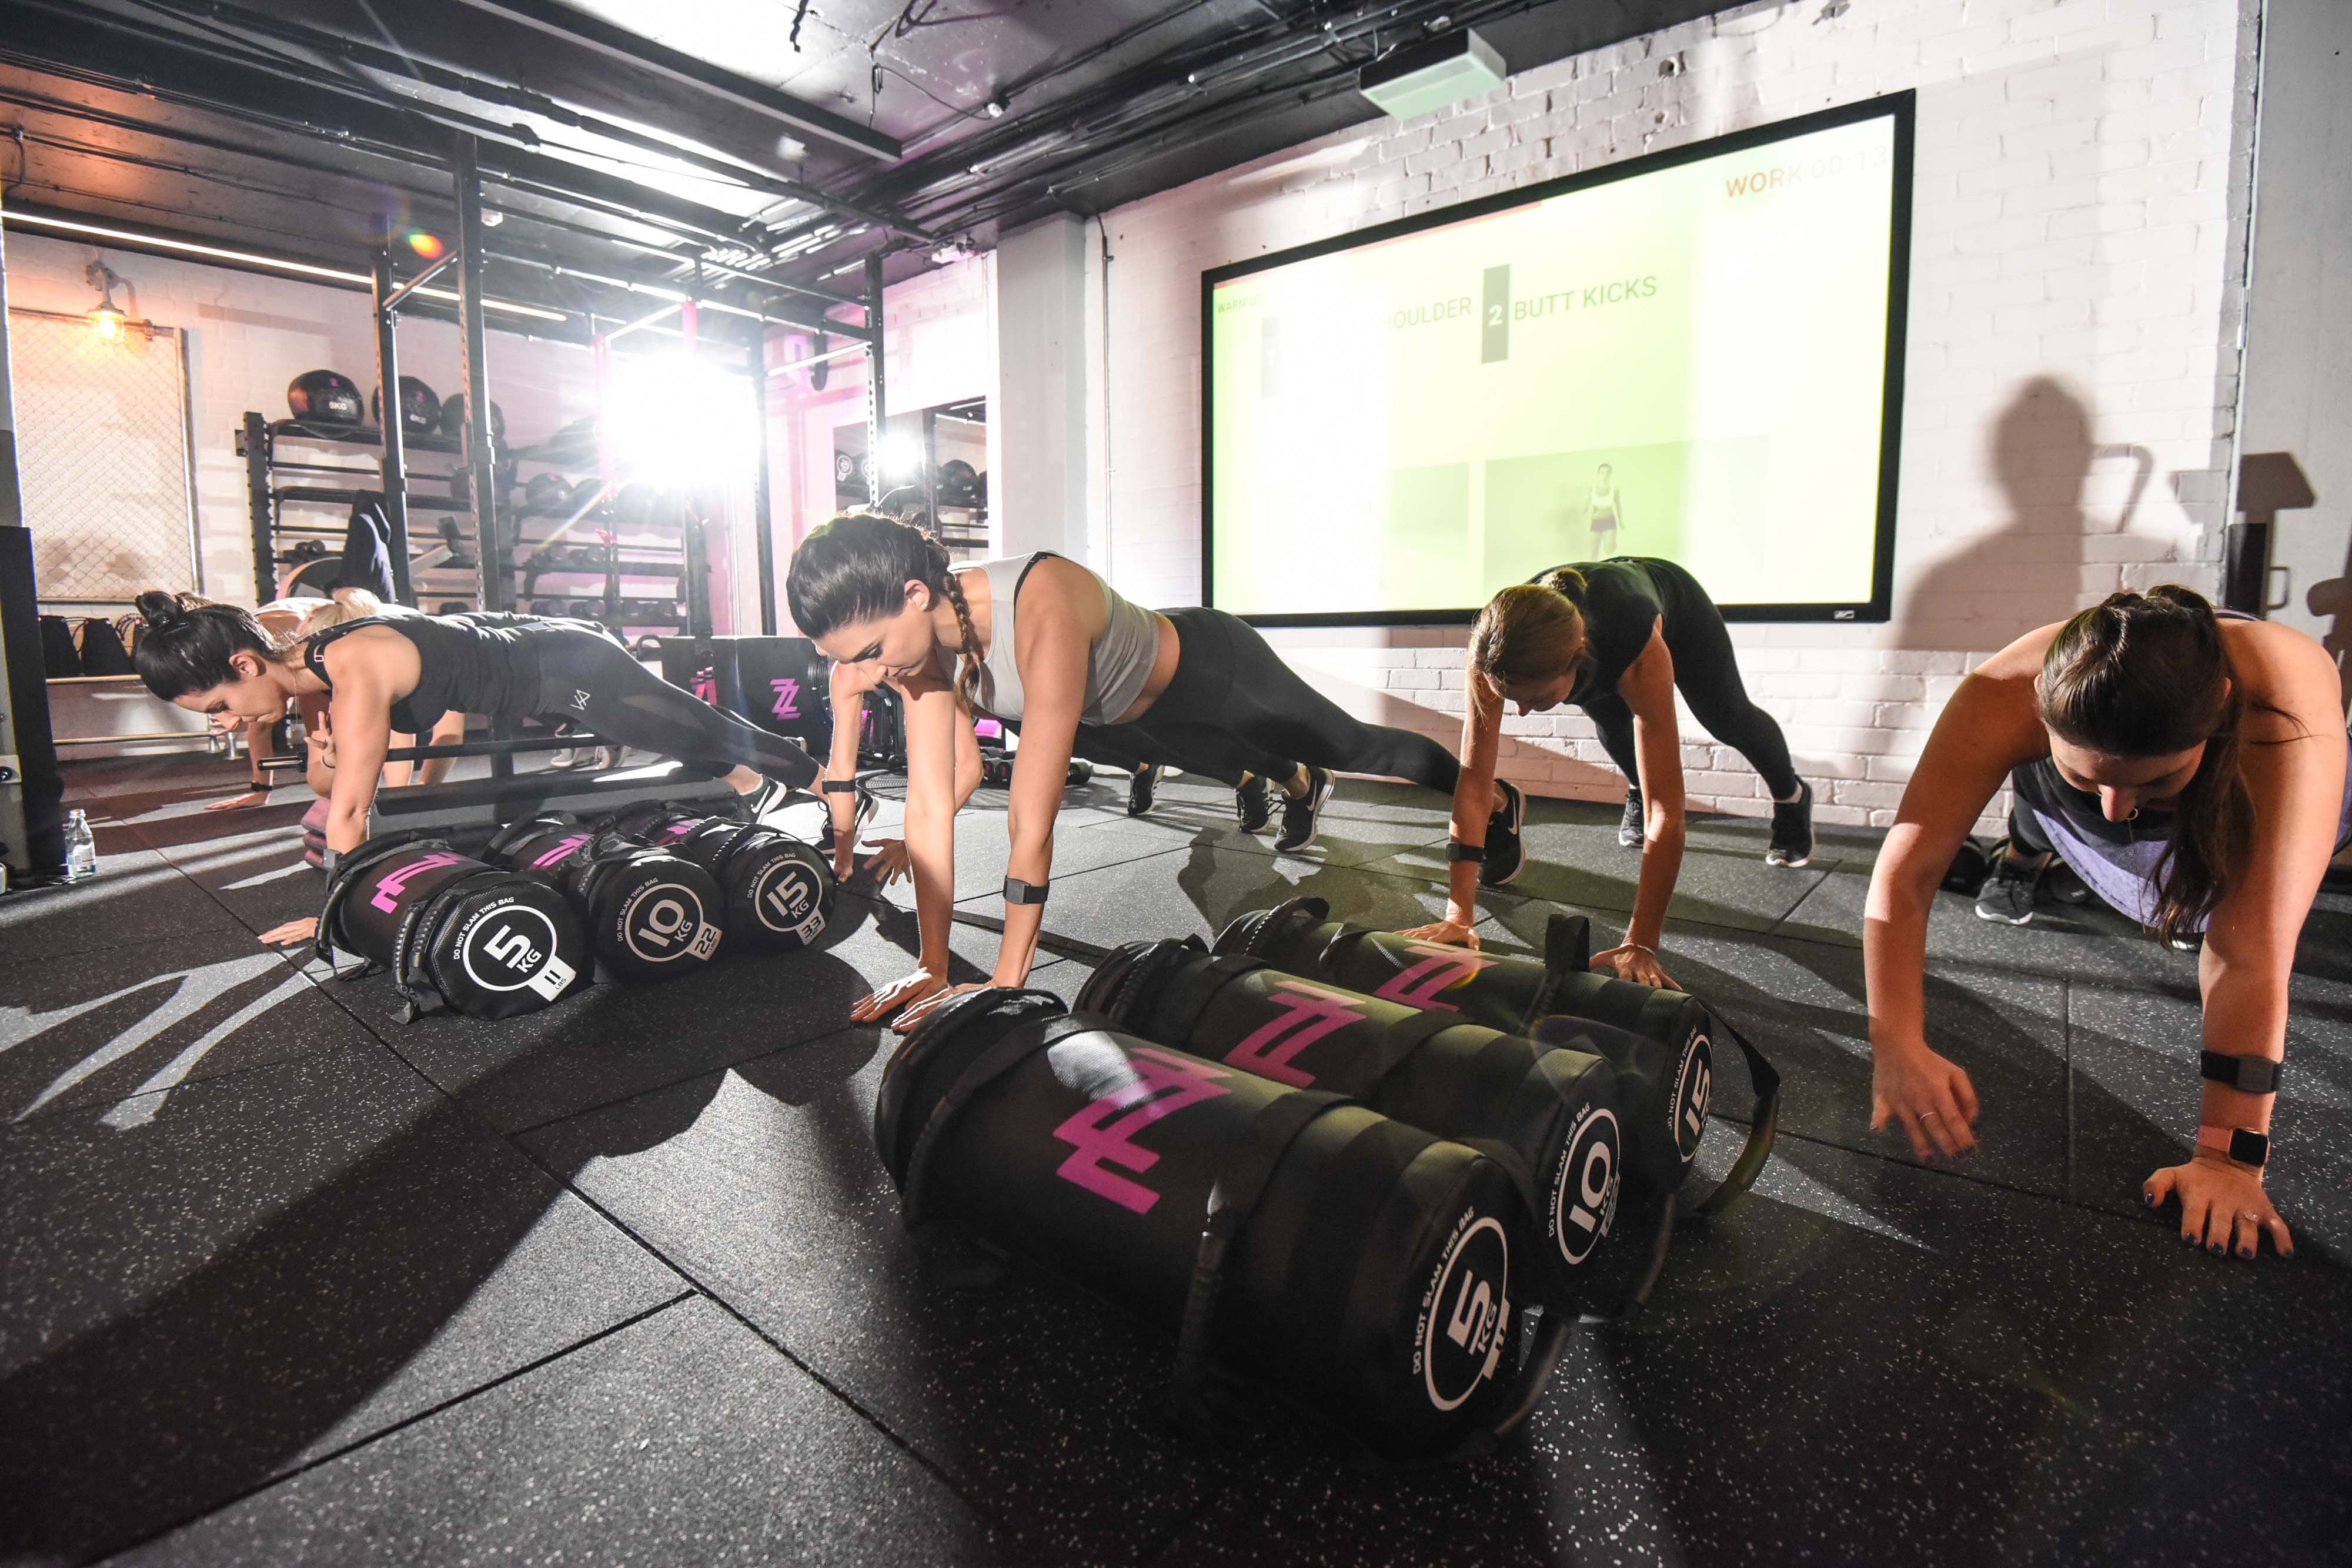 zadi-the-game-changer-in-female-fitness-boutique-studios-not-a-gym-9